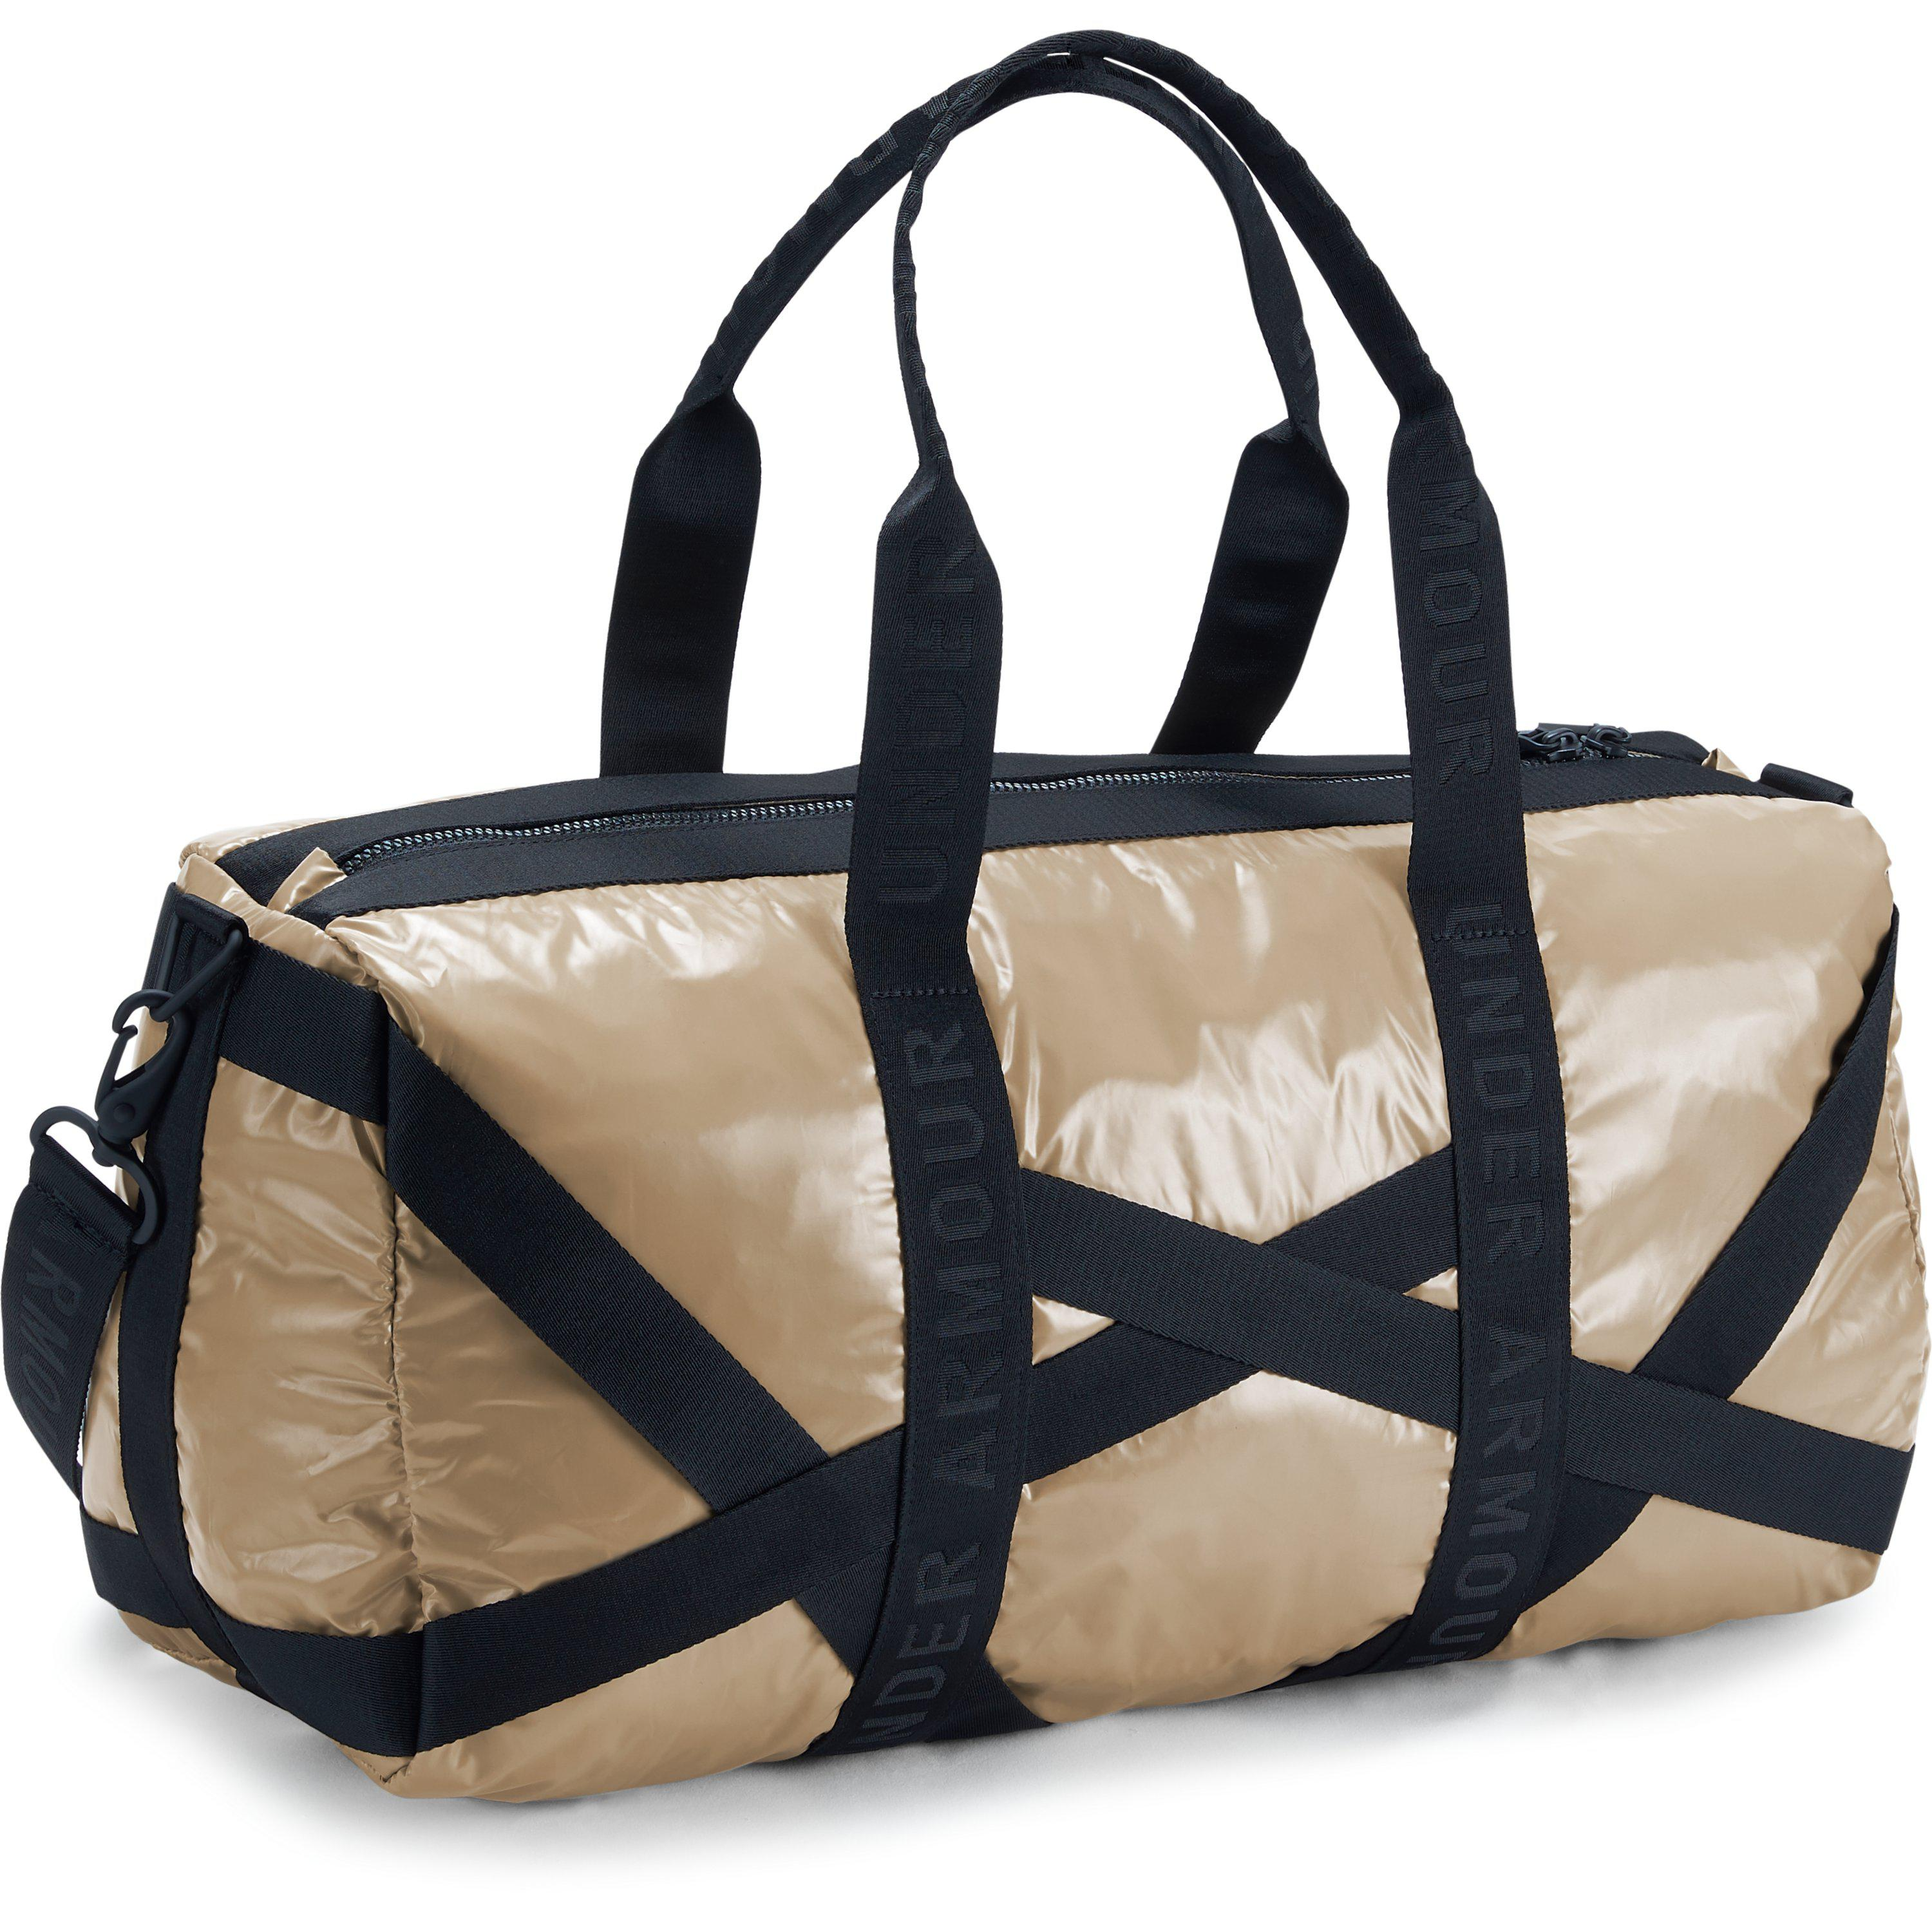 e3f5fe9f0151 Lyst - Under Armour Women s Ua Beltway Duffle